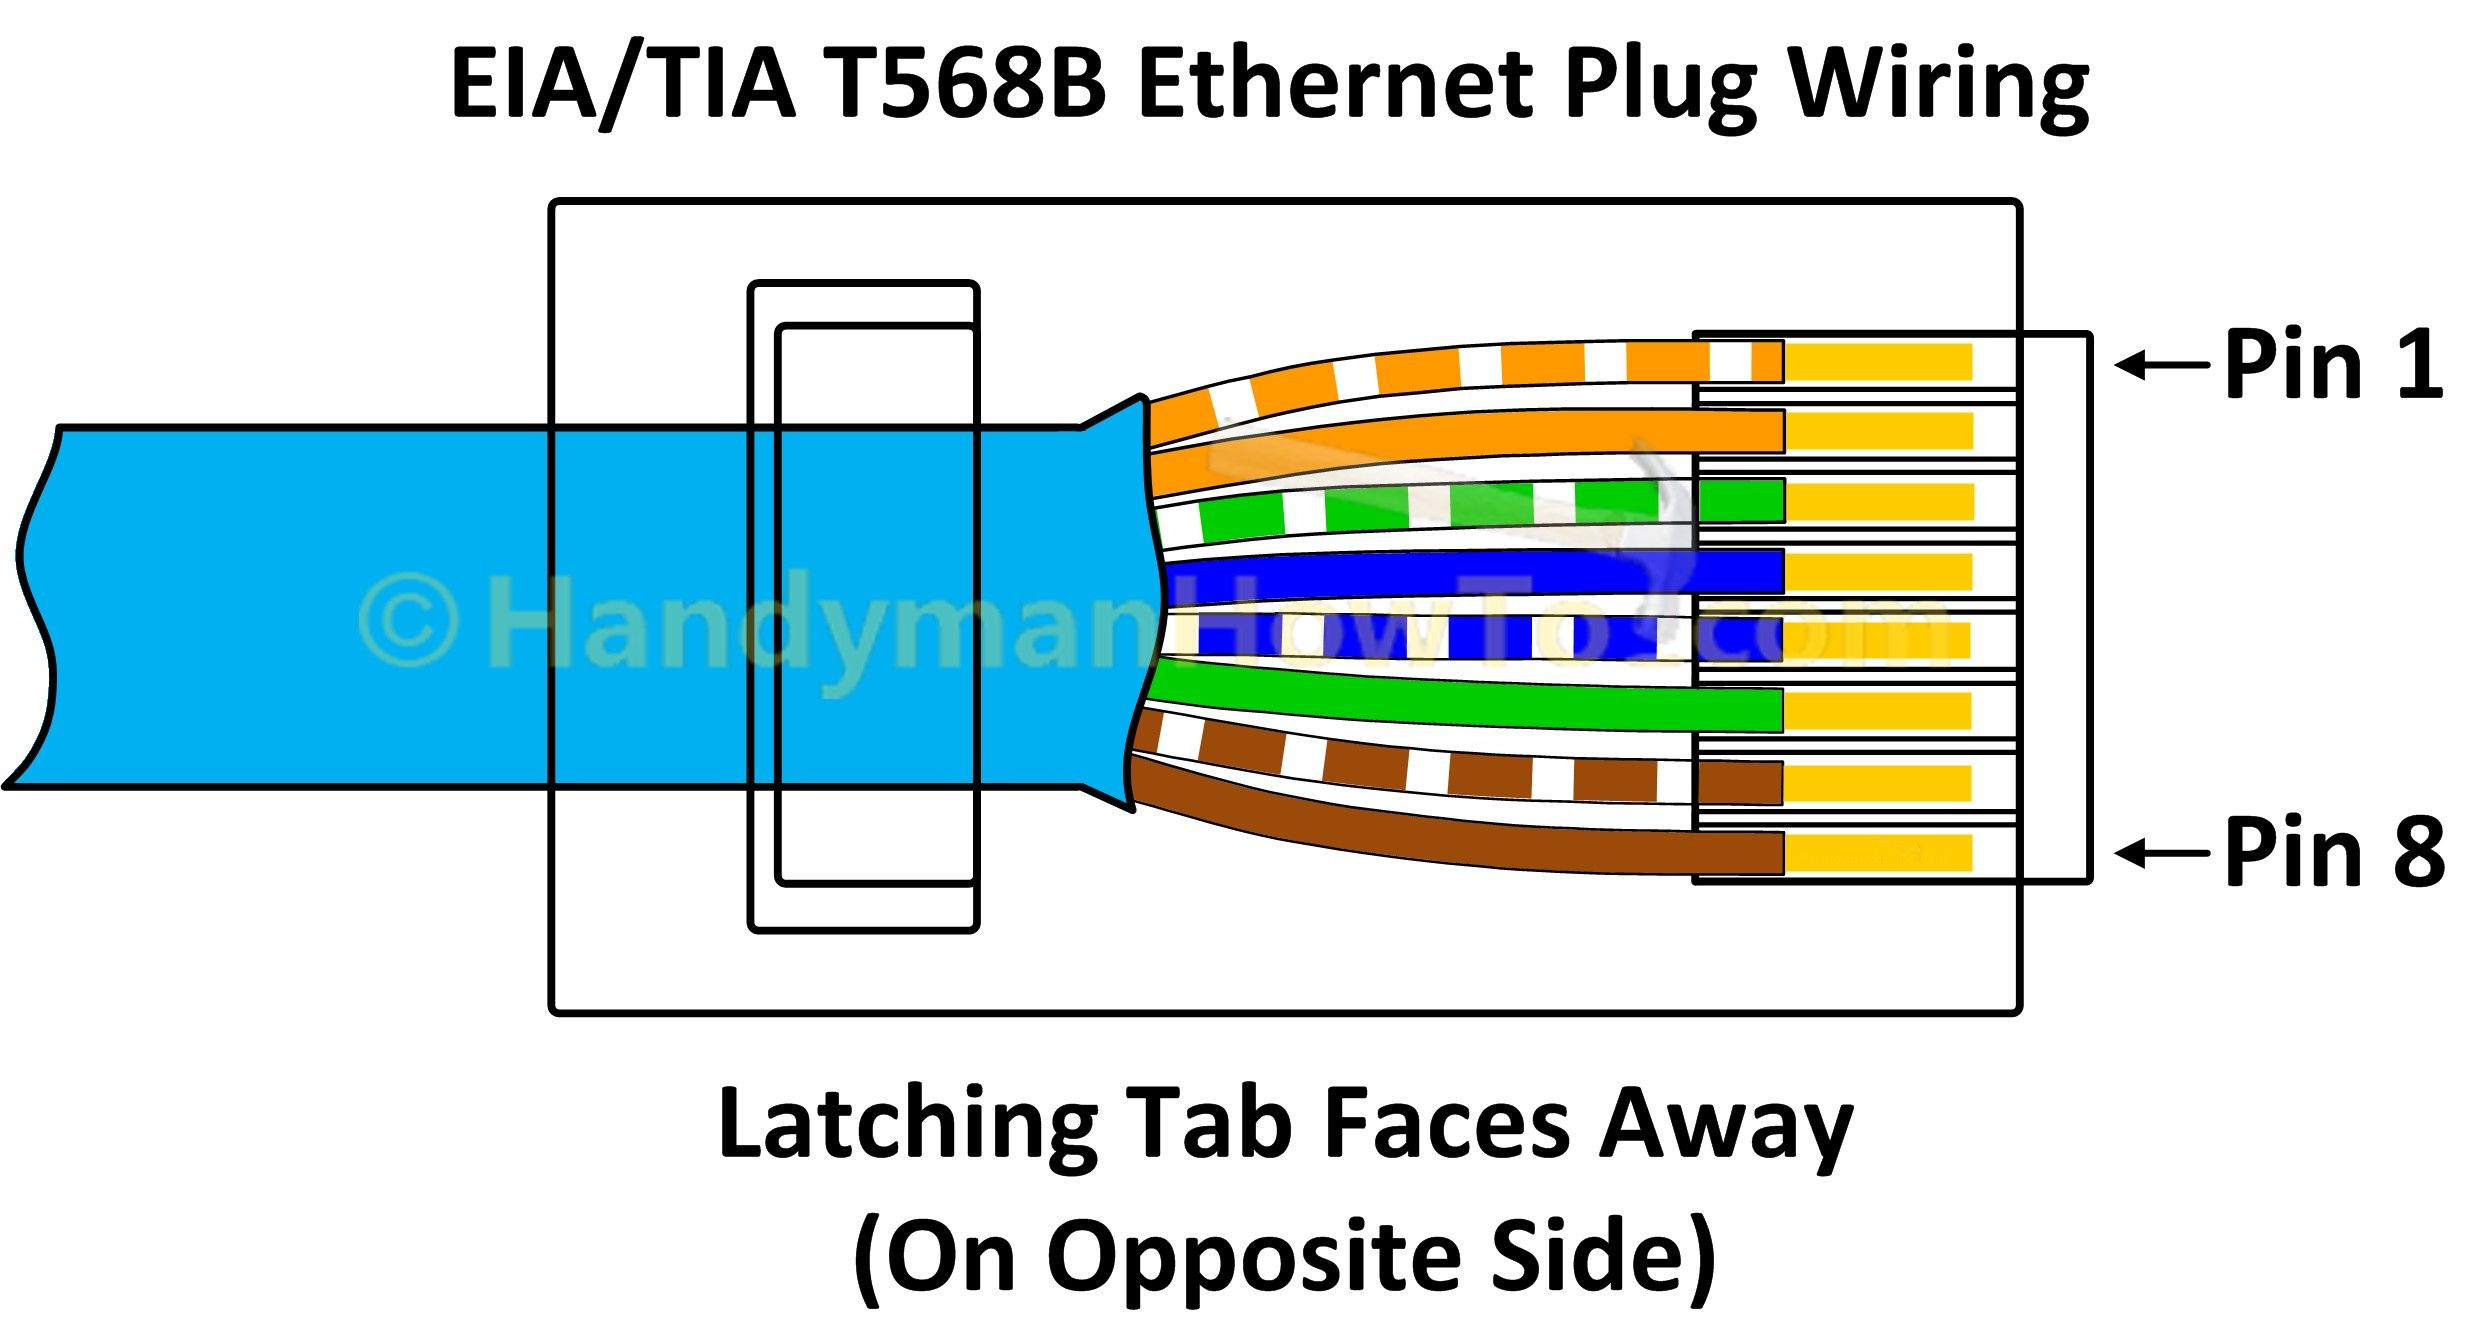 568 B Wiring Diagram In 2020 Network Cable Ethernet Wiring Ethernet Cable